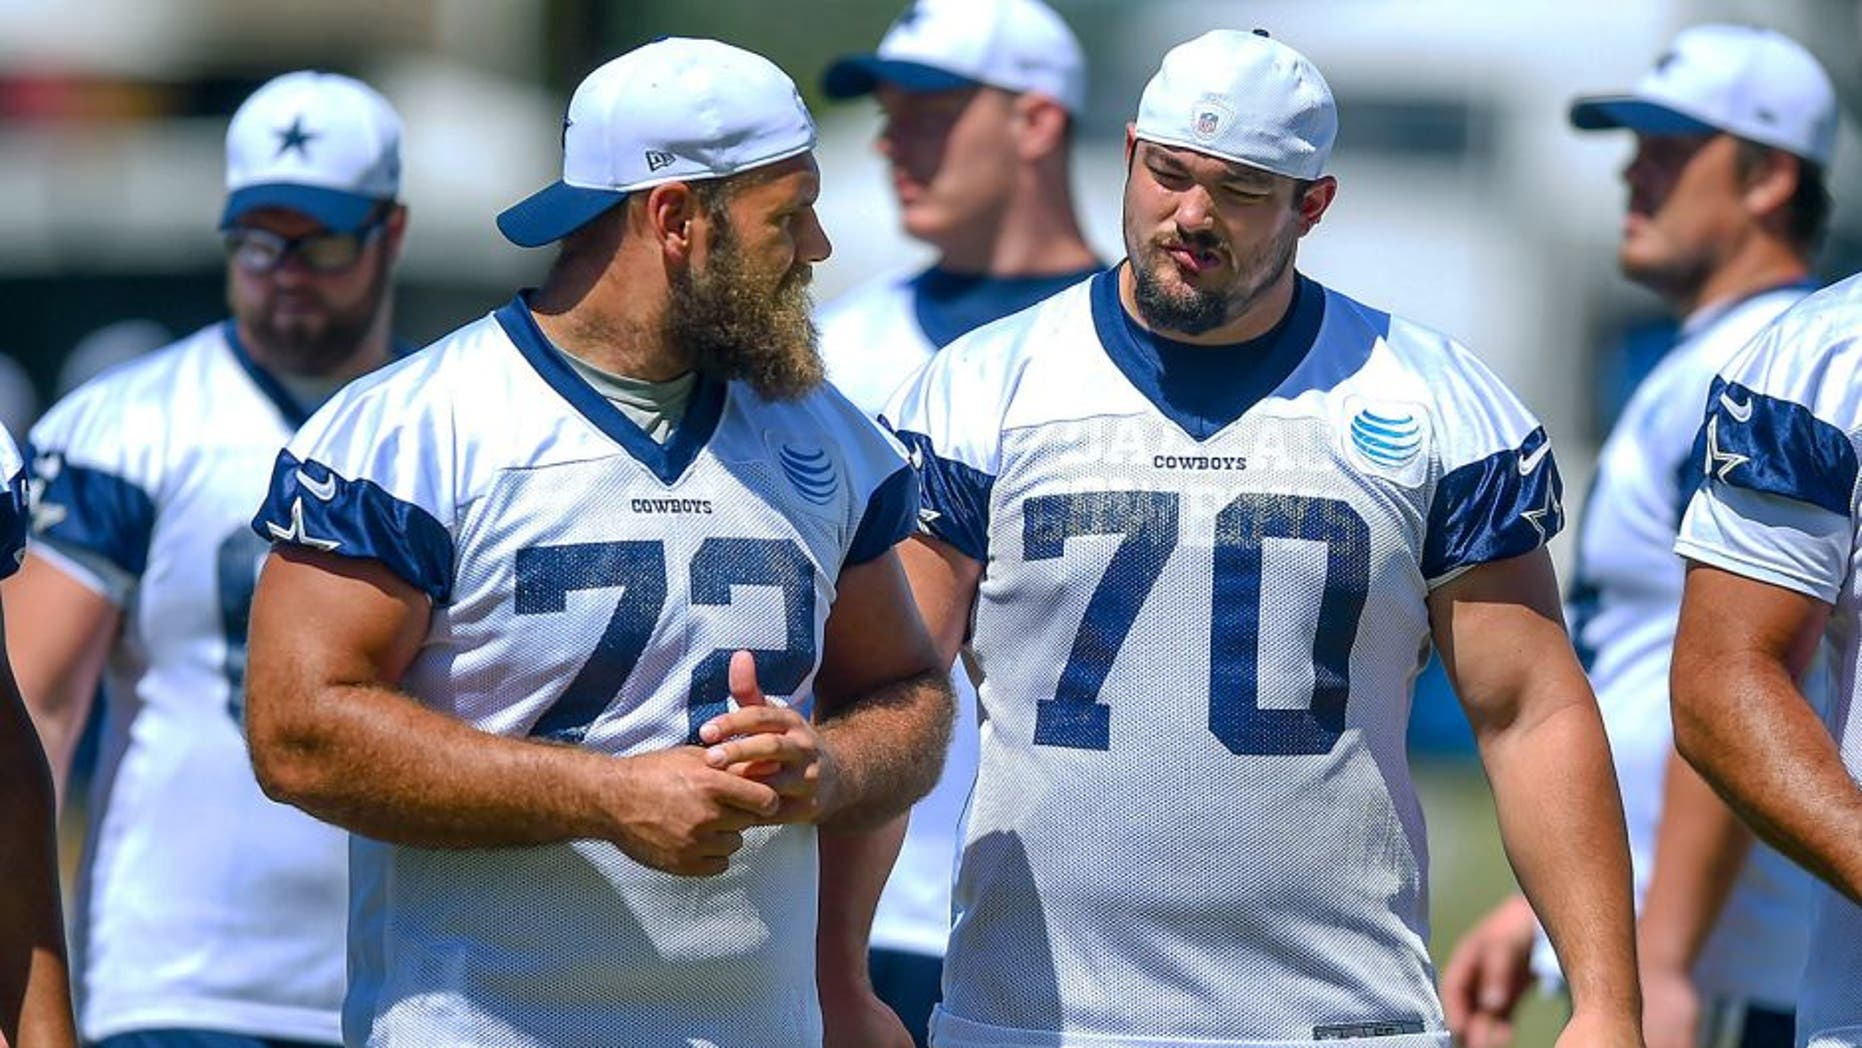 Dallas Cowboys center Travis Frederick (72) and guard Zack Martin (70) take the field for morning practice at NFL football training camp, Tuesday, Aug. 4, 2015, in Oxnard, Calif. (AP Photo/Gus Ruelas)